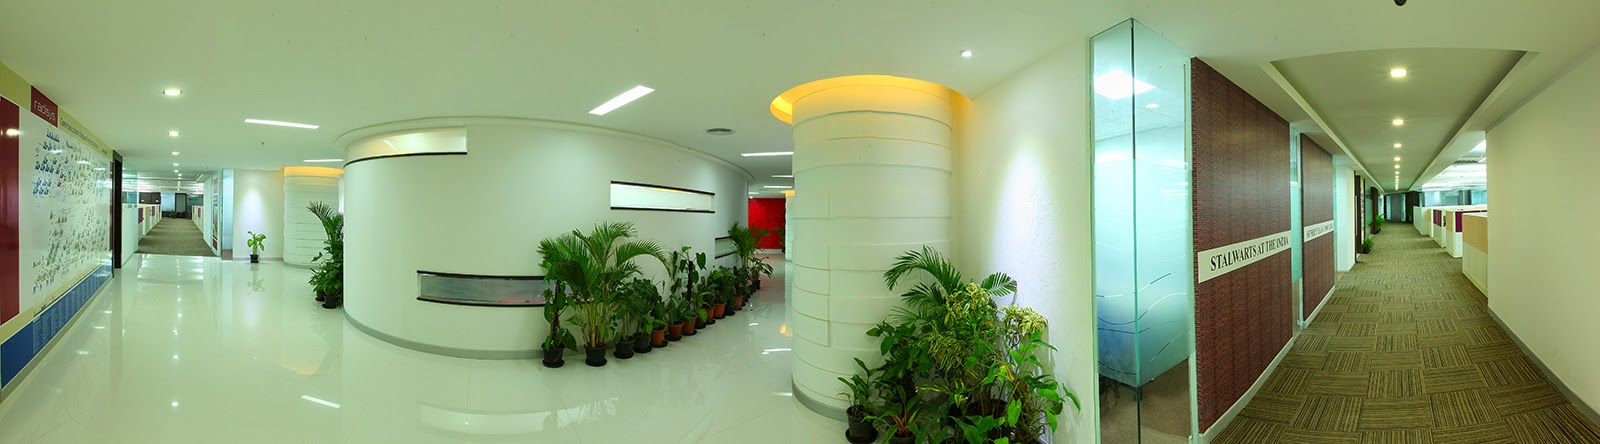 interior photography panorama